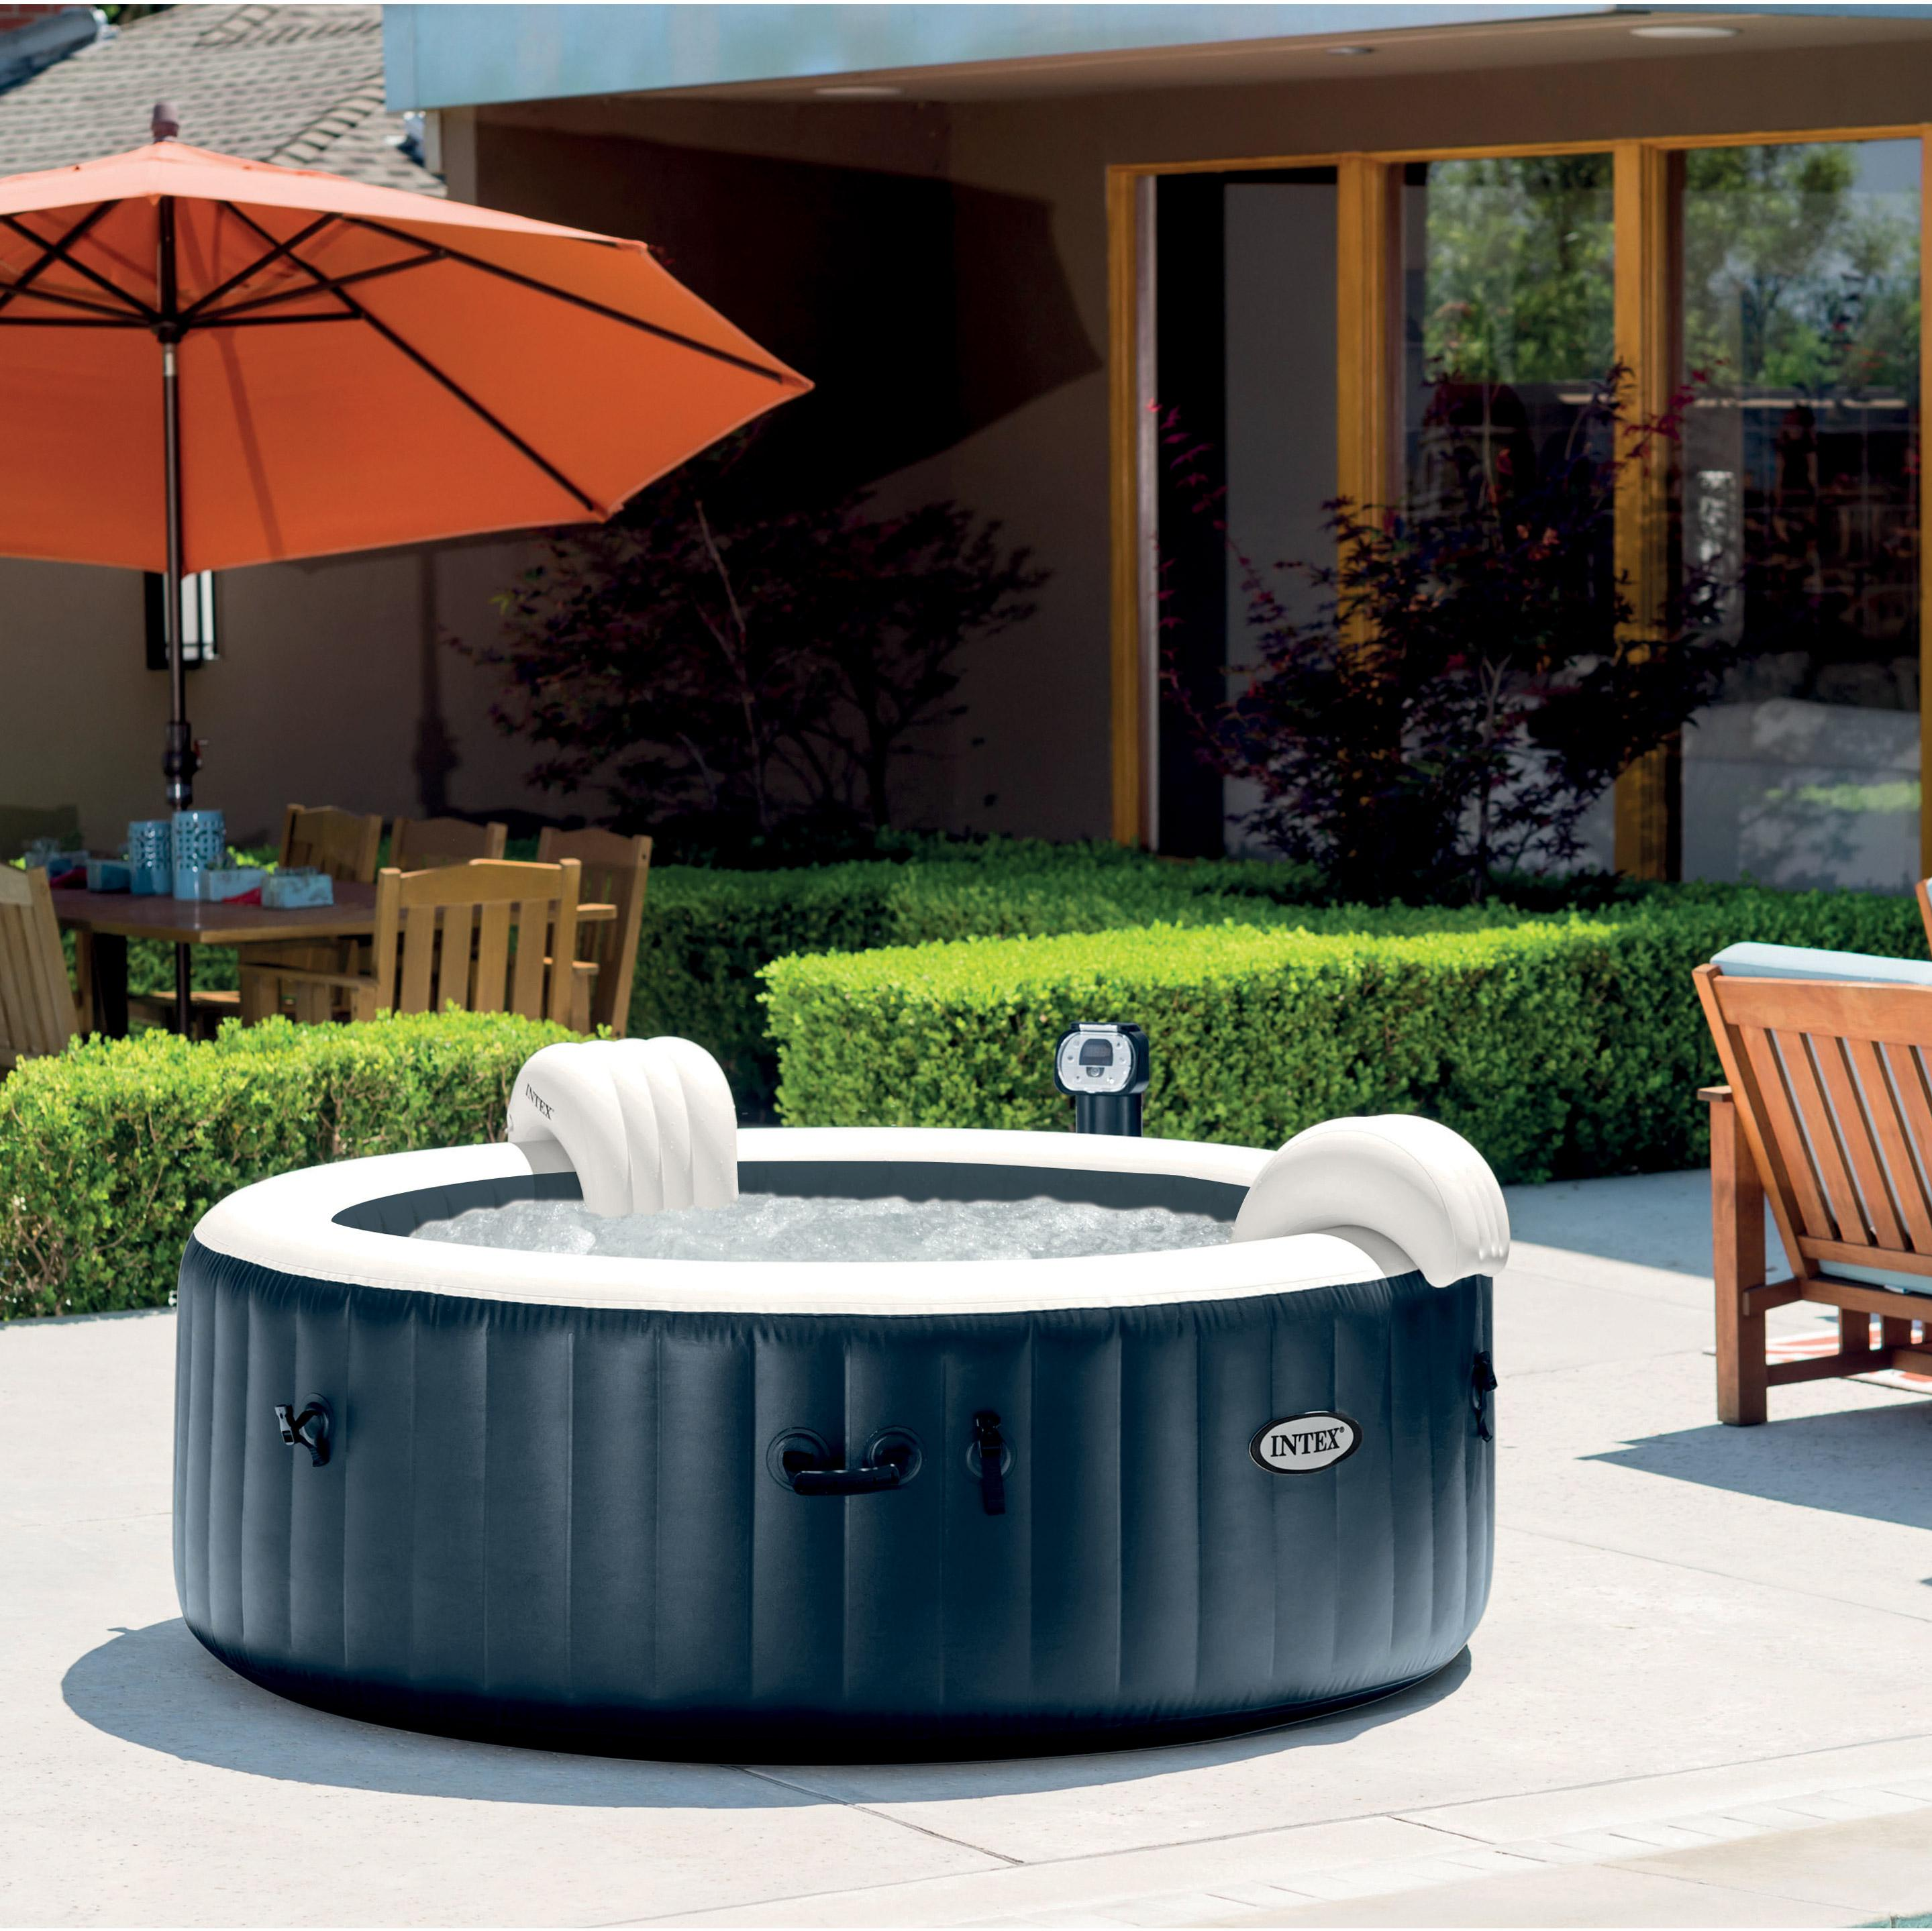 Installer Spa Gonflable Exterieur spa gonflable intex purespa led rond, 6 places assises